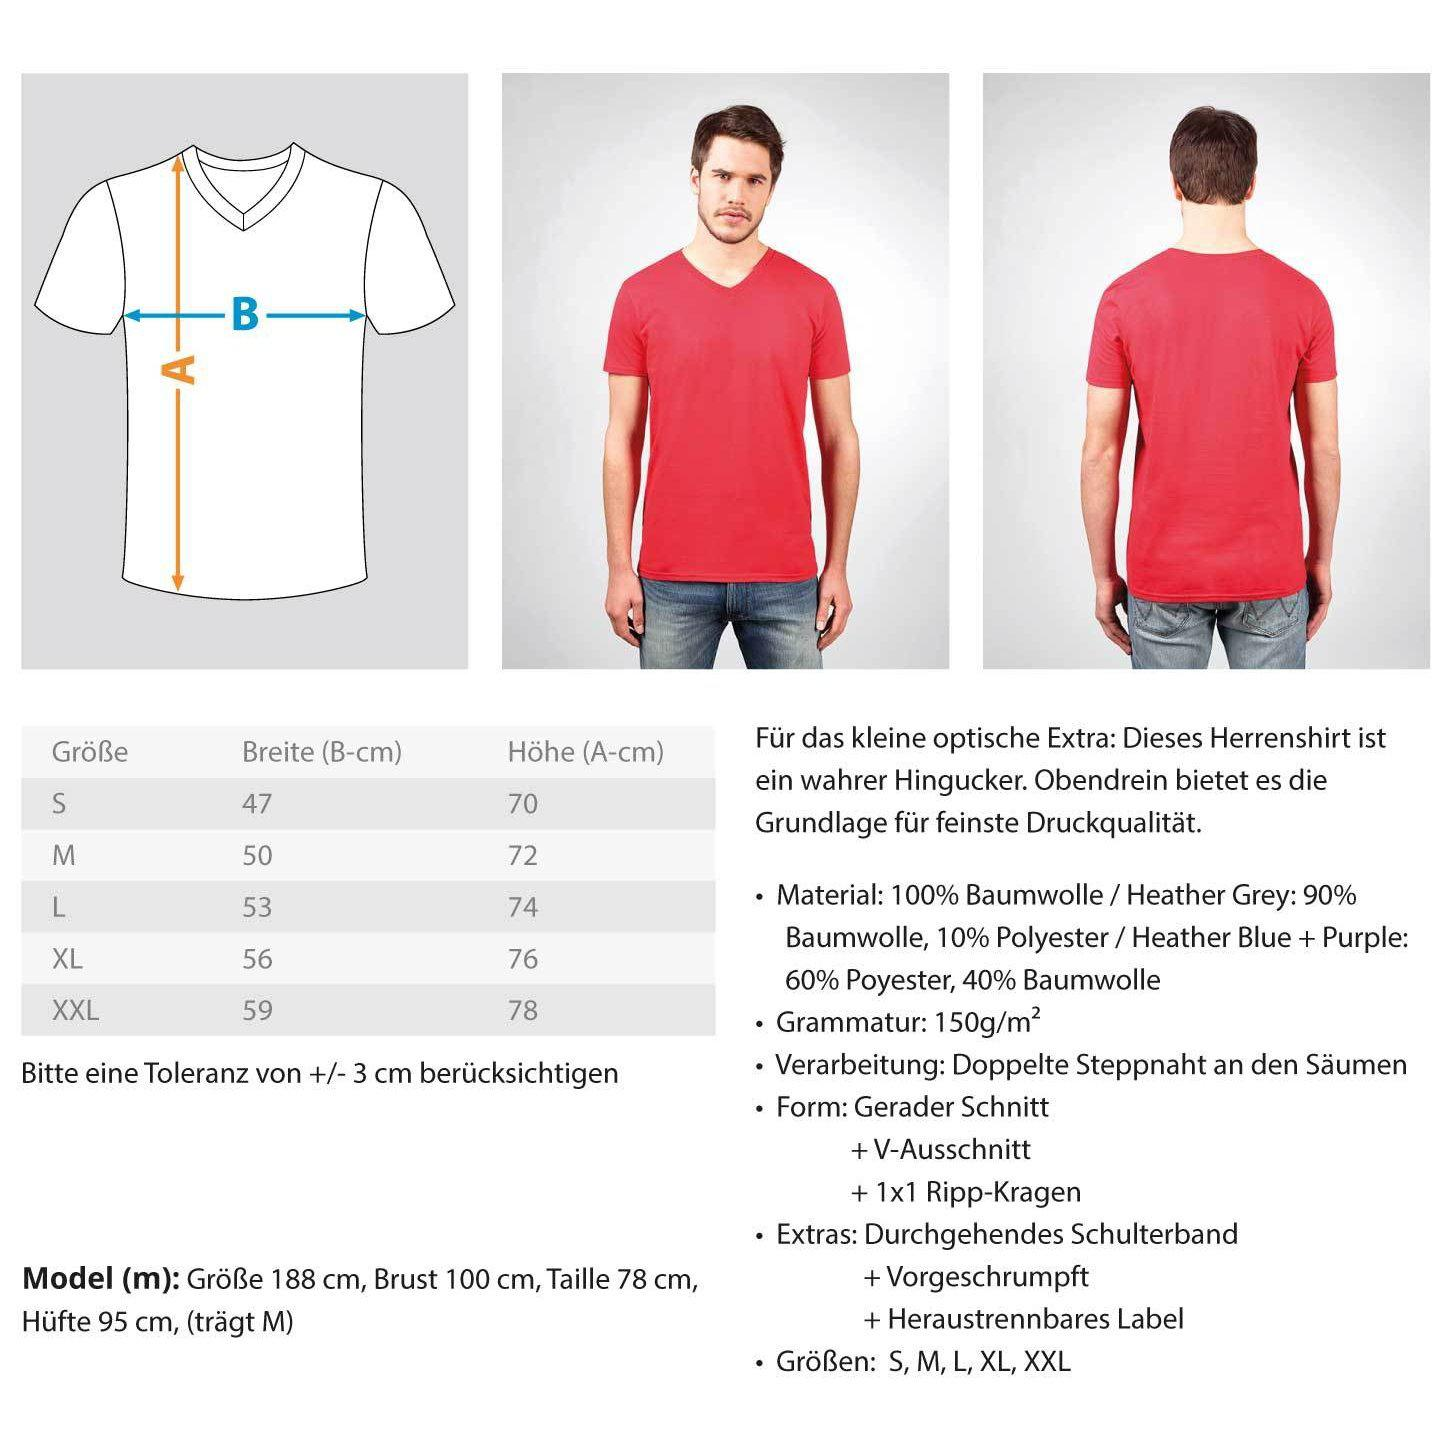 Ich Zieh das... white - Rave On!® - Herren V-Neck Shirt V-Neck Herrenshirt - Rave On!® der Club & Techno Szene Shop für Coole Junge Mode Streetwear Style & Fashion Outfits + Sexy Festival 420 Stuff